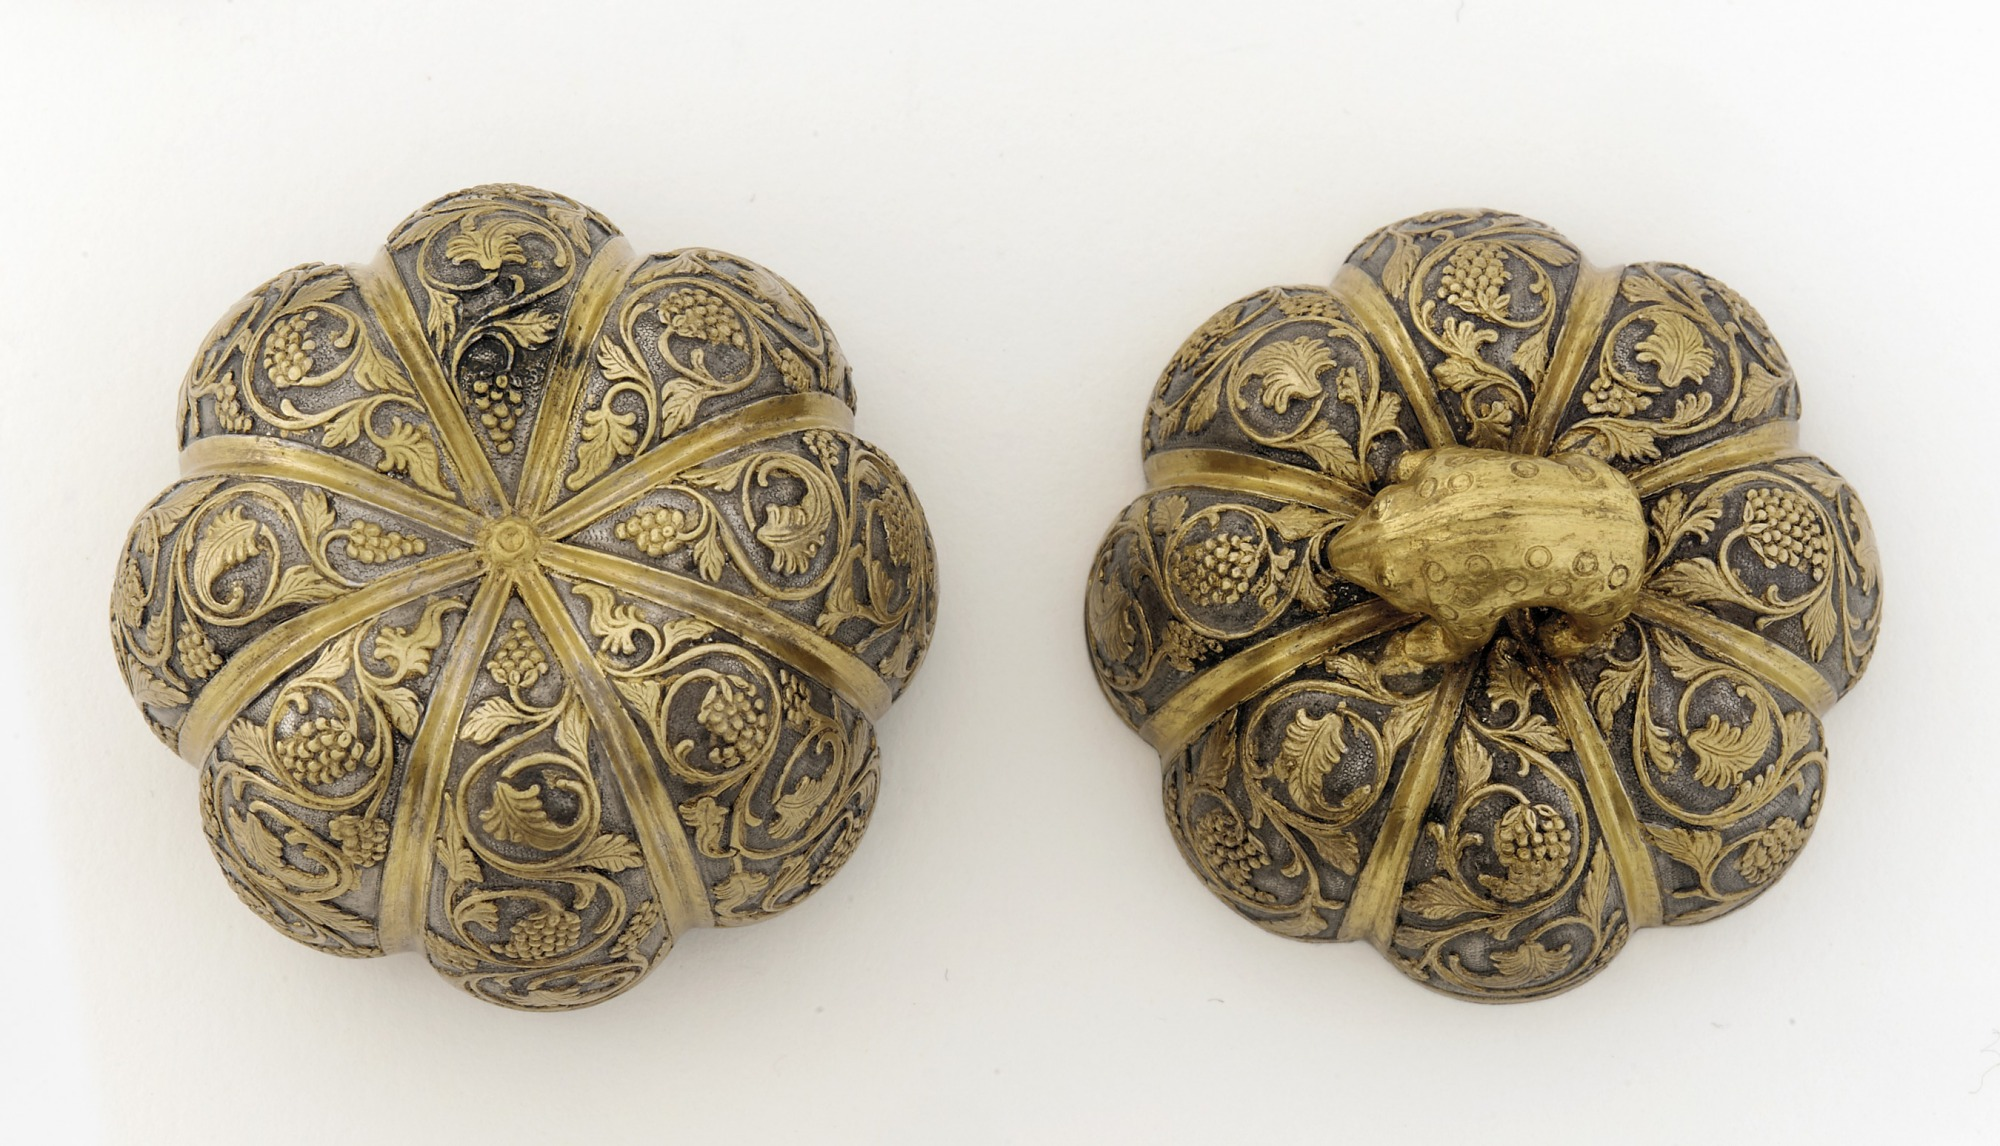 base with cover: Lidded box in the form of a melon with grapevines and knob in the shape of a rodent